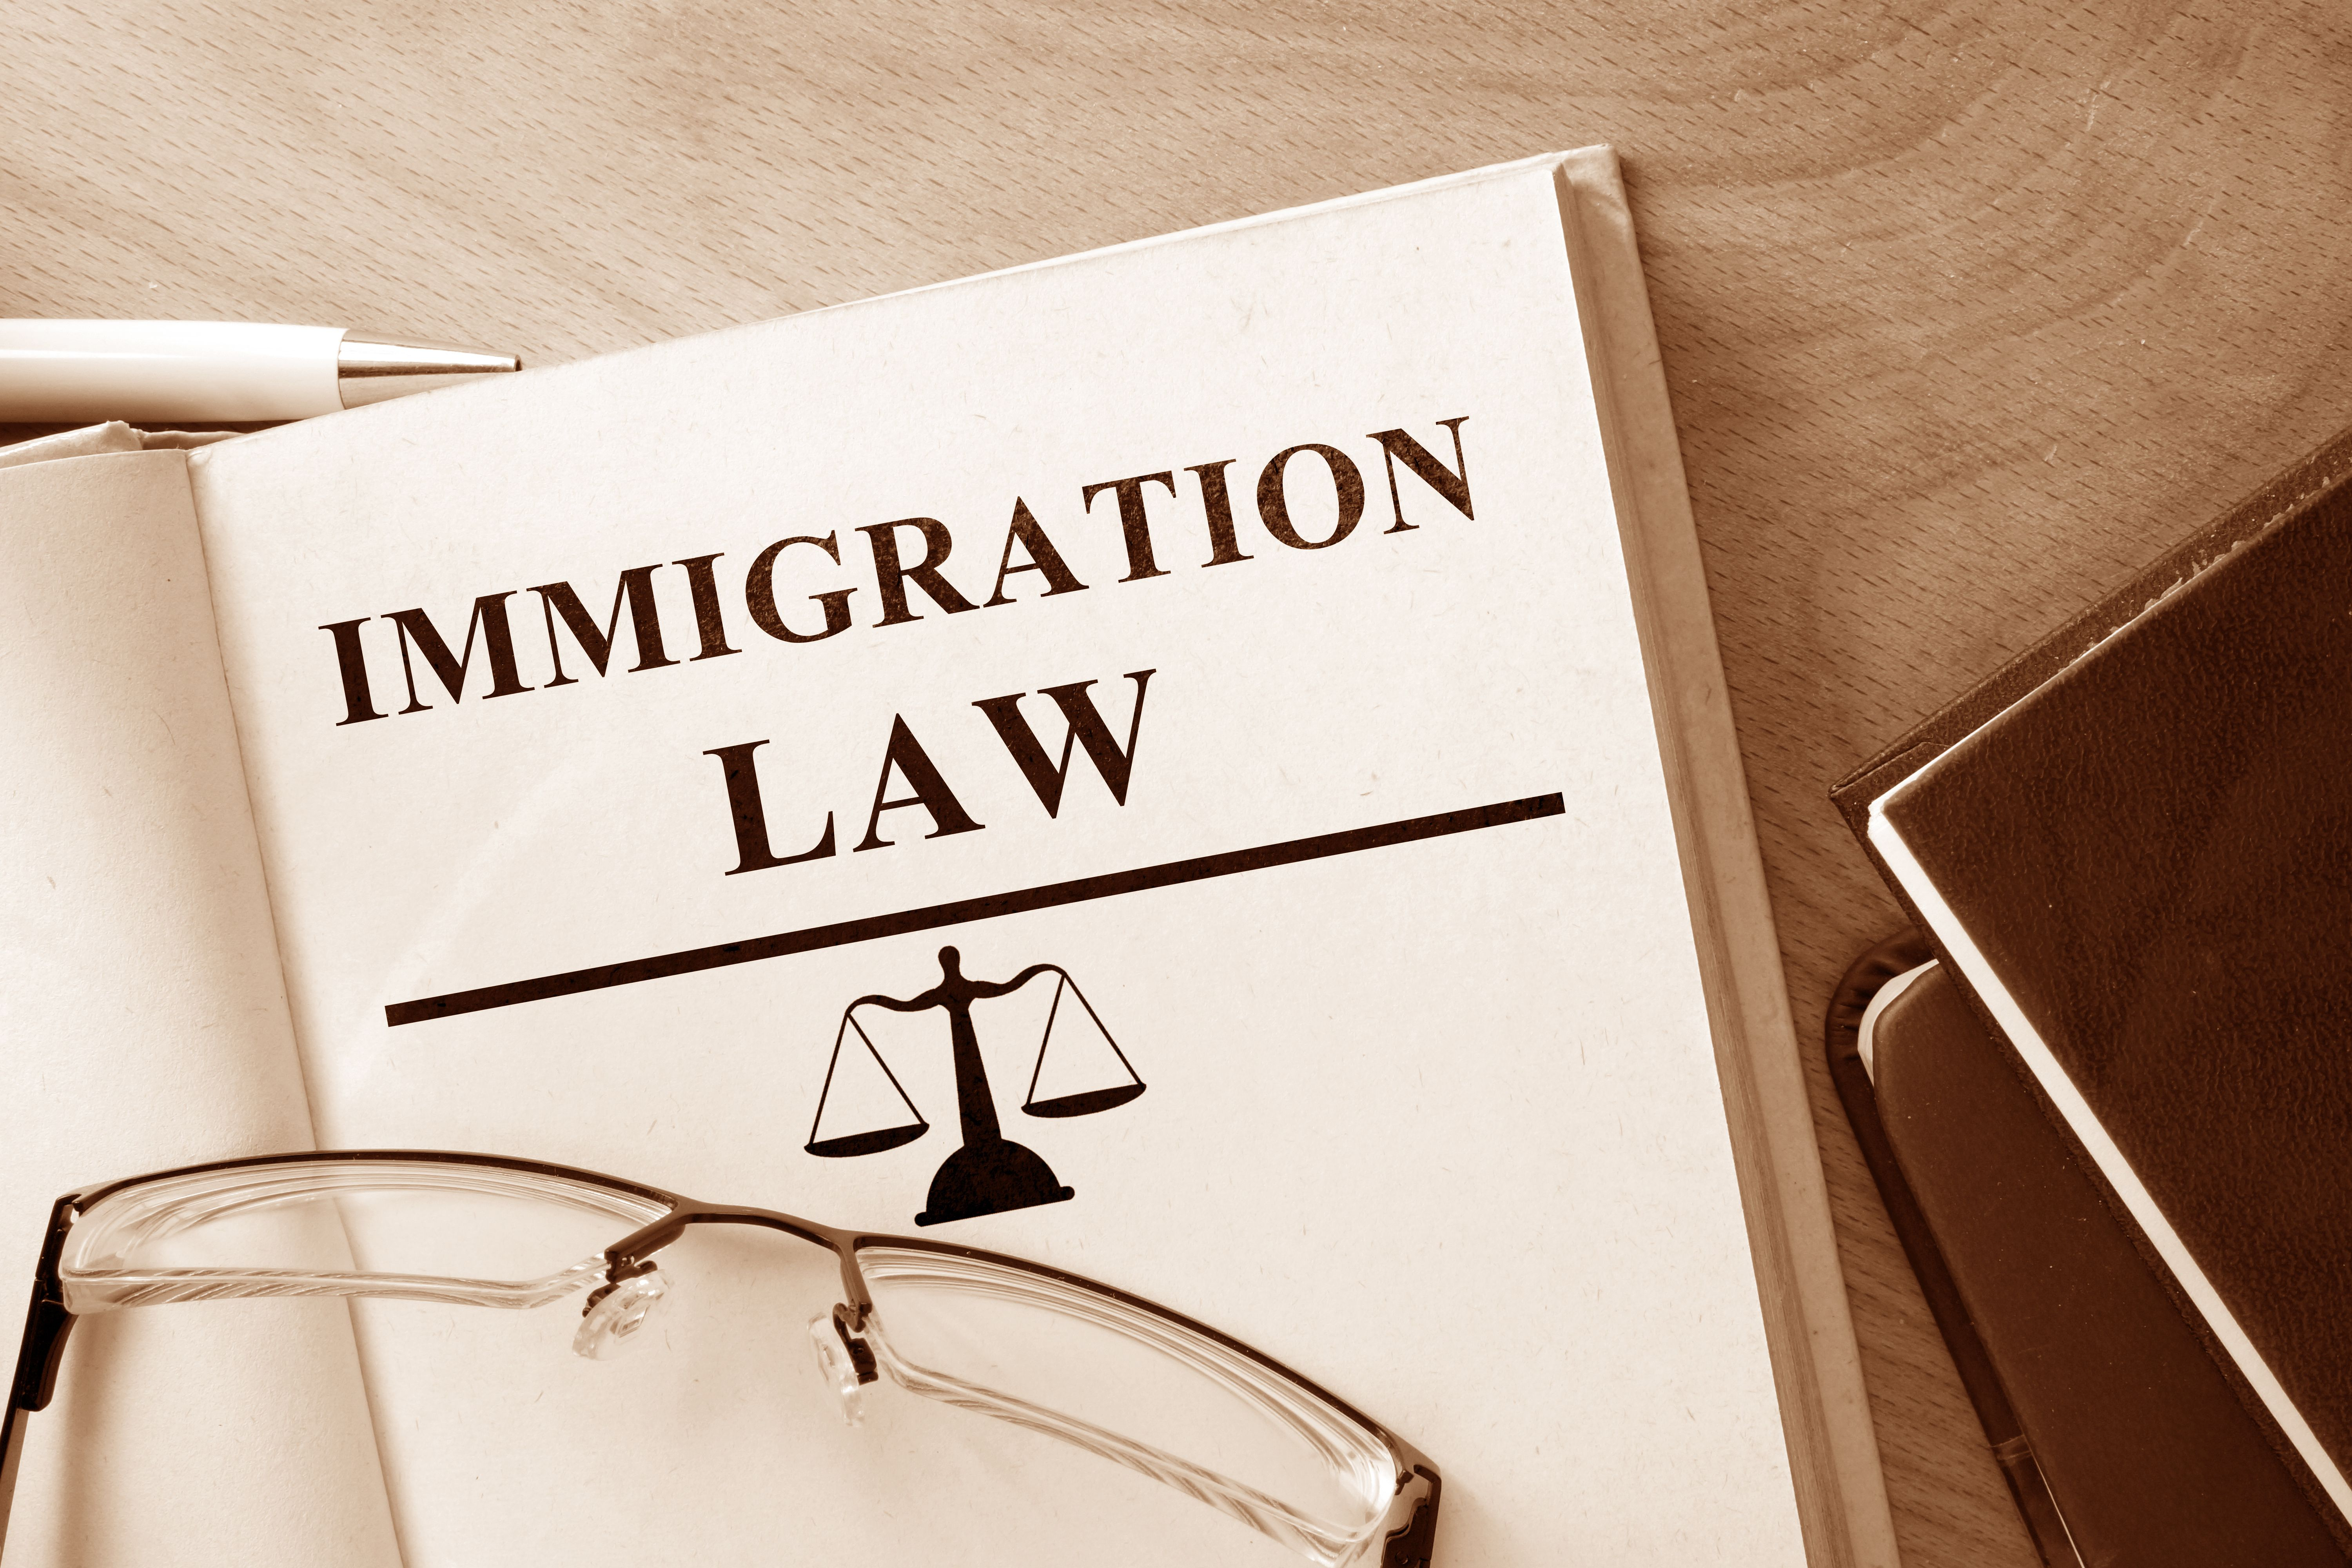 Top immigration consultants fostering migration dreams